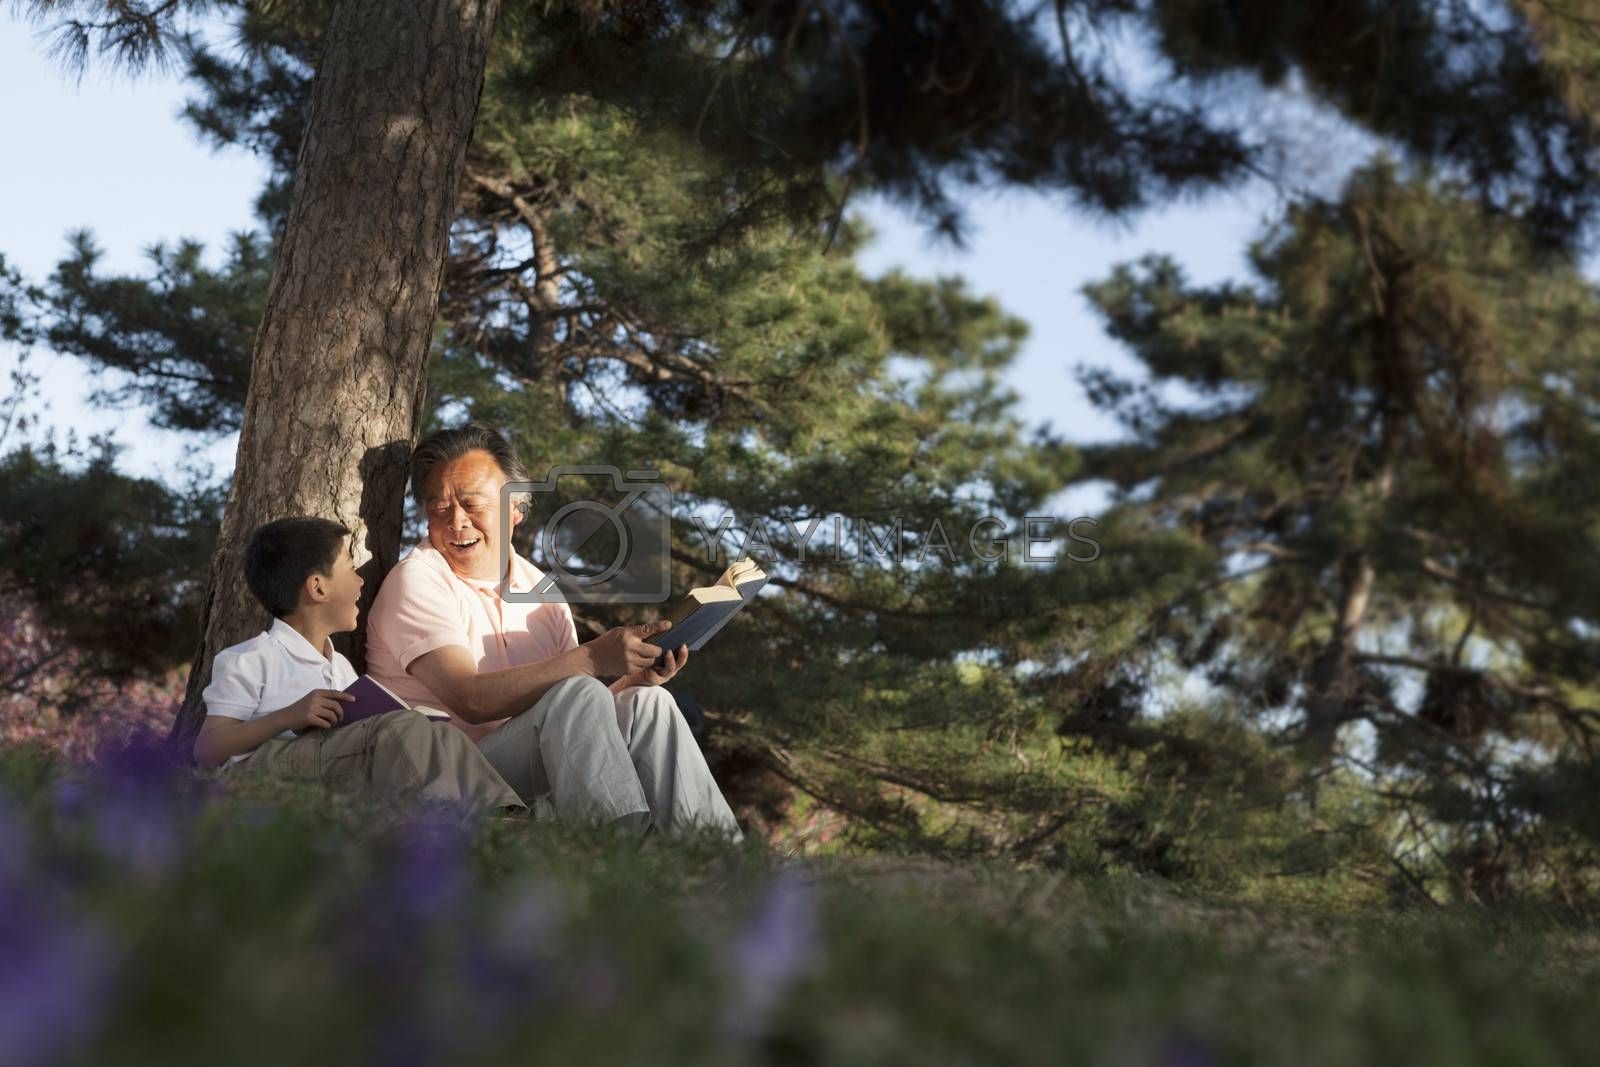 Grandfather and grandson relaxing under a tree and reading books in a park in the springtime, Beijing